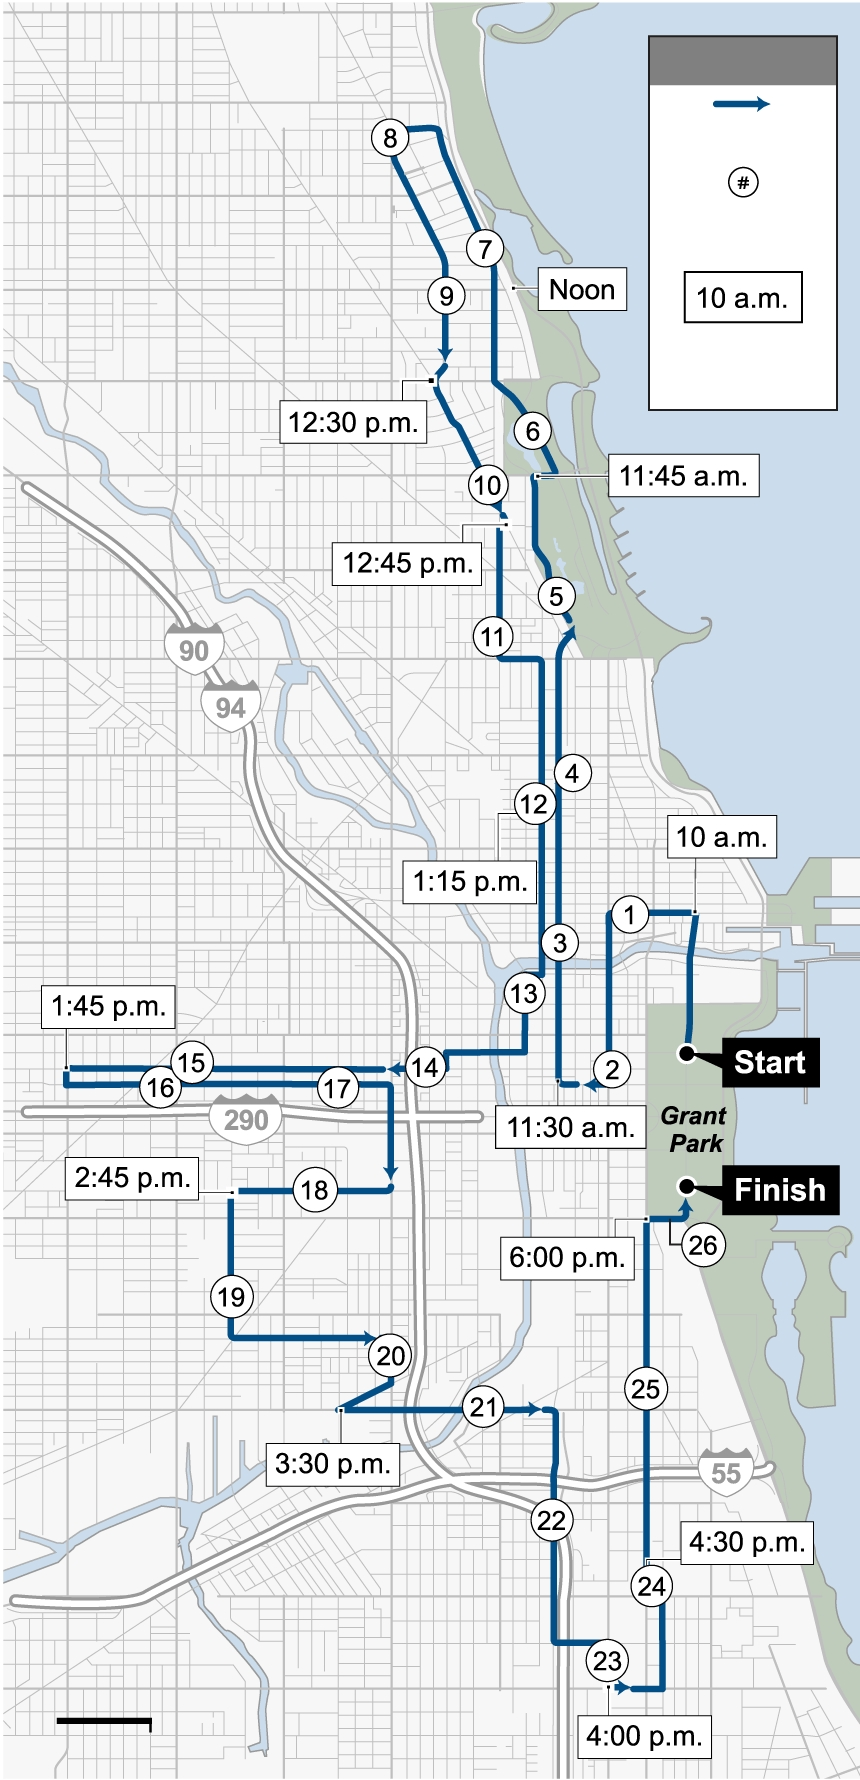 Chicago Marathon 2019: Course Map, Where To Watch The Race inside 2019 Chicago Marathon Route Map